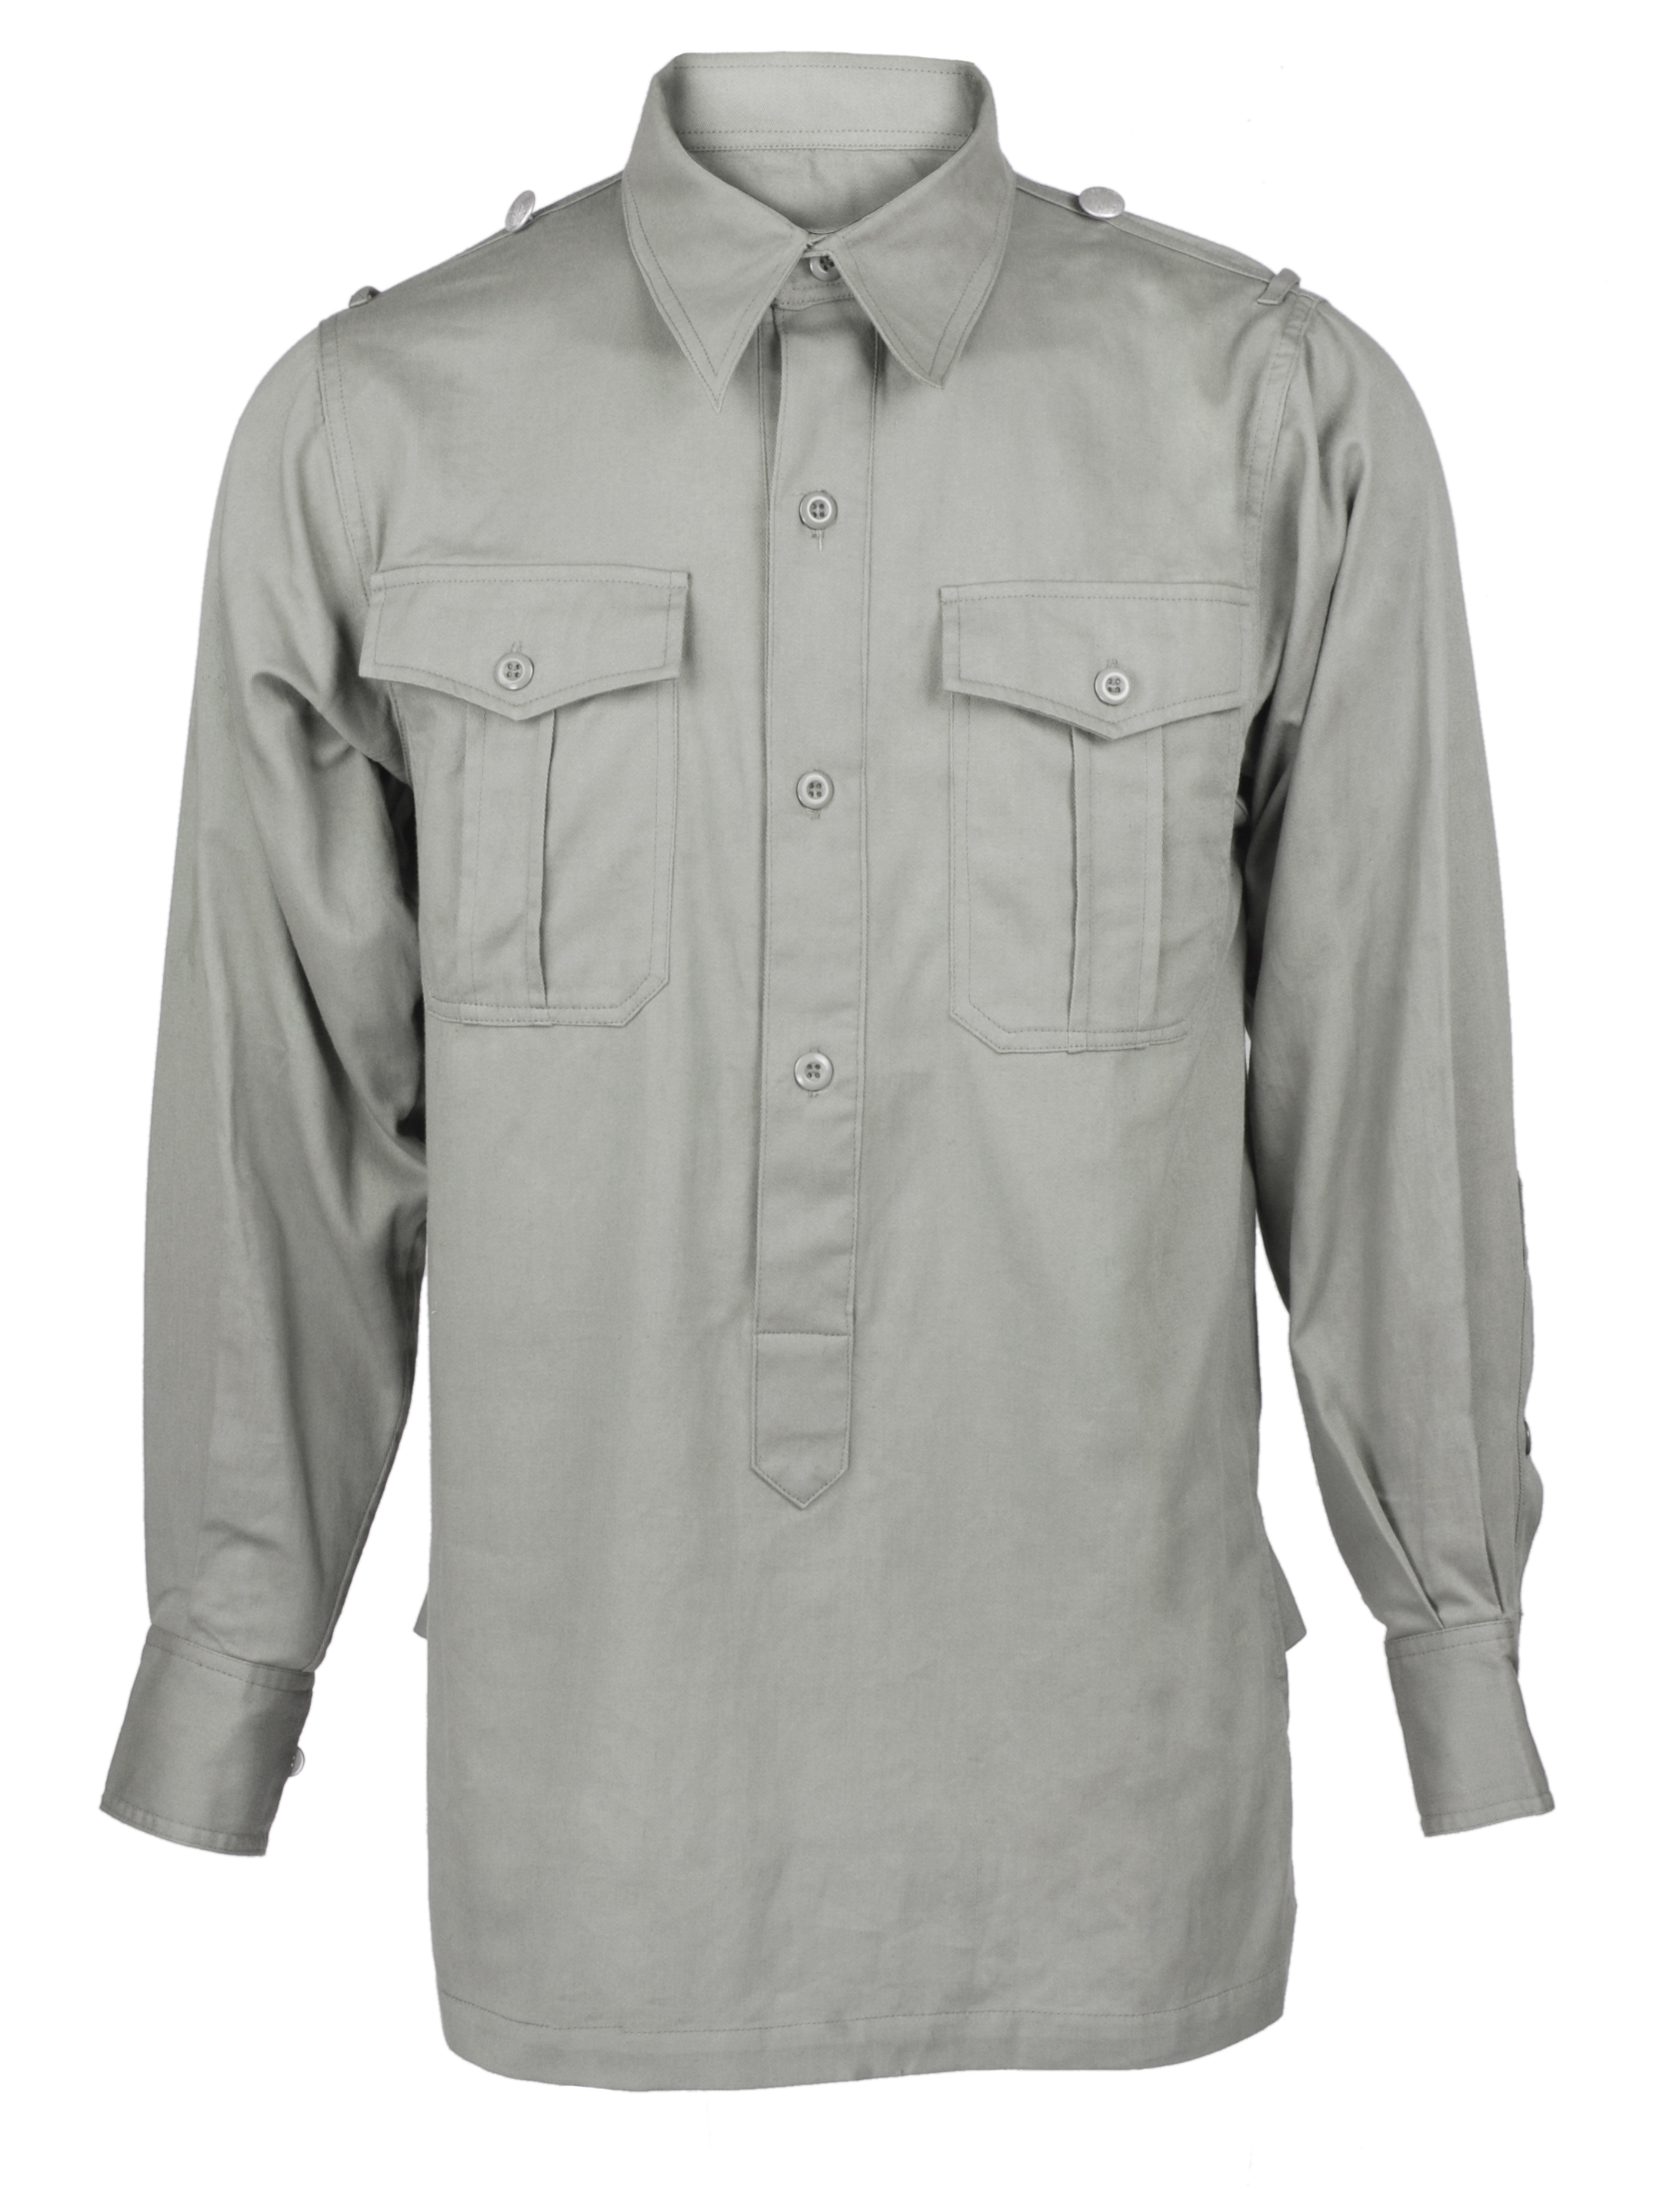 WW2 GERMAN WH WEHRMACHT HEER GREY COTTON SHIRT-32553